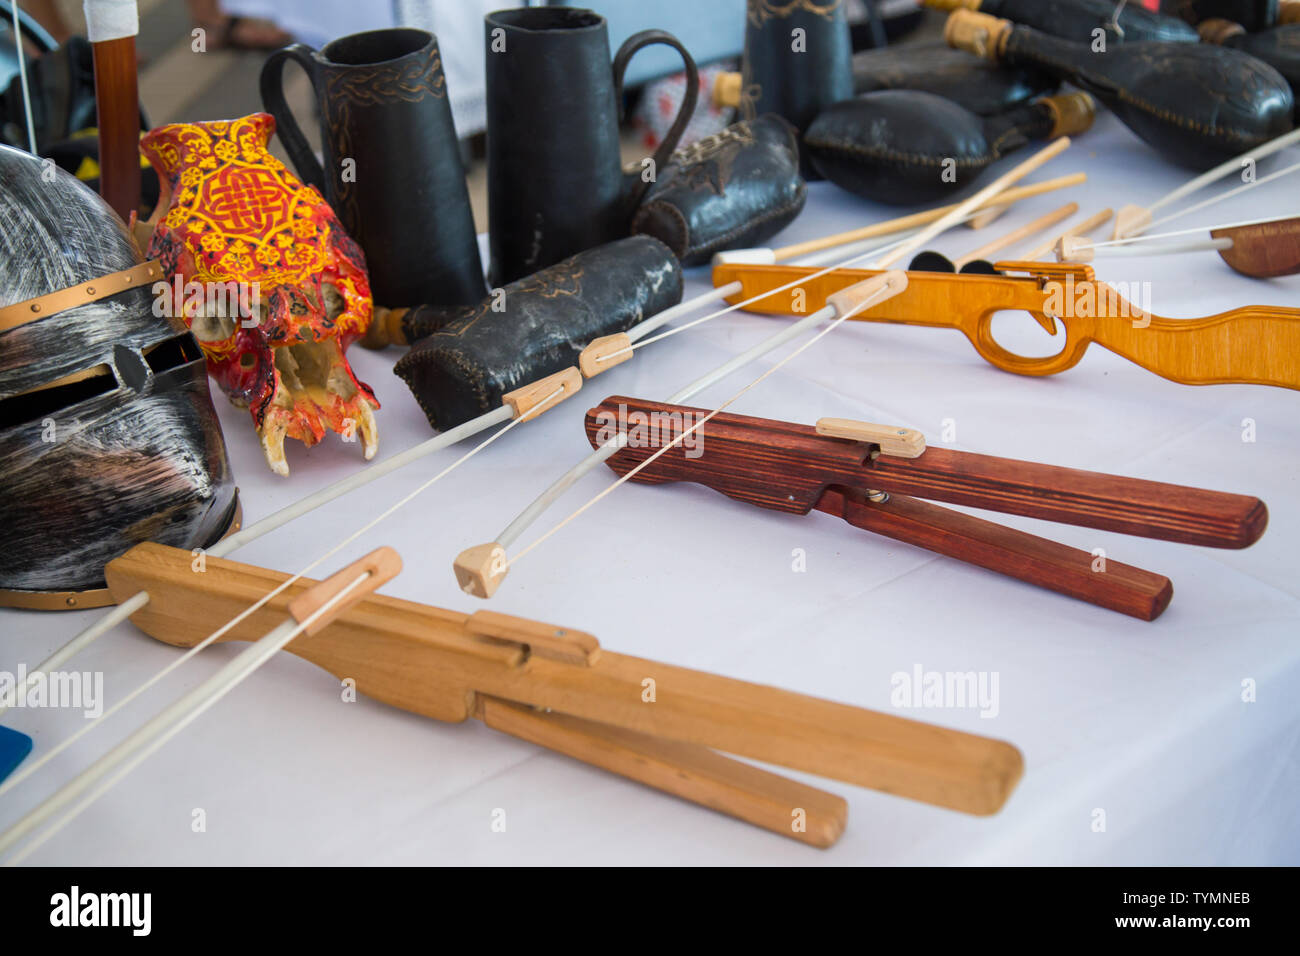 Crossbows Stock Photos & Crossbows Stock Images - Alamy